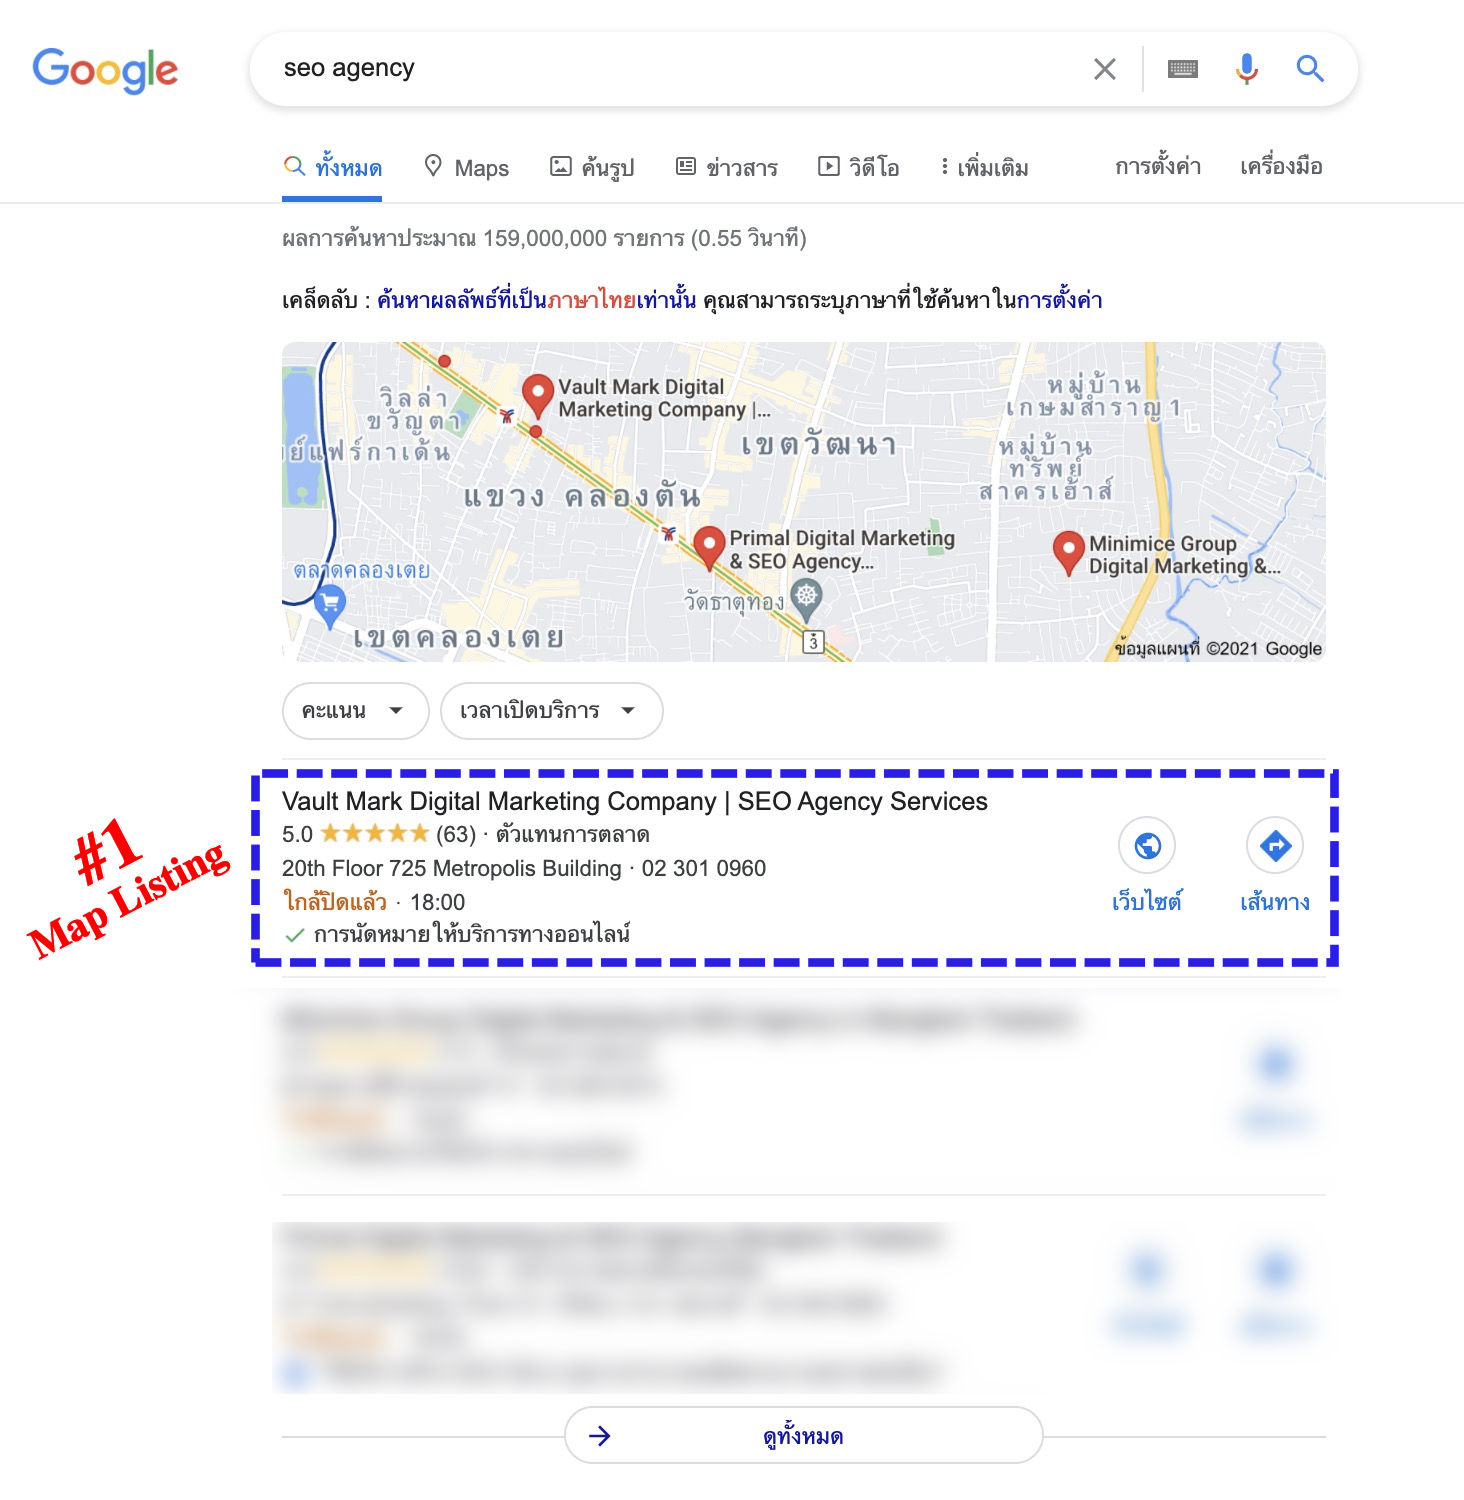 seo agency top map listing on Google first page